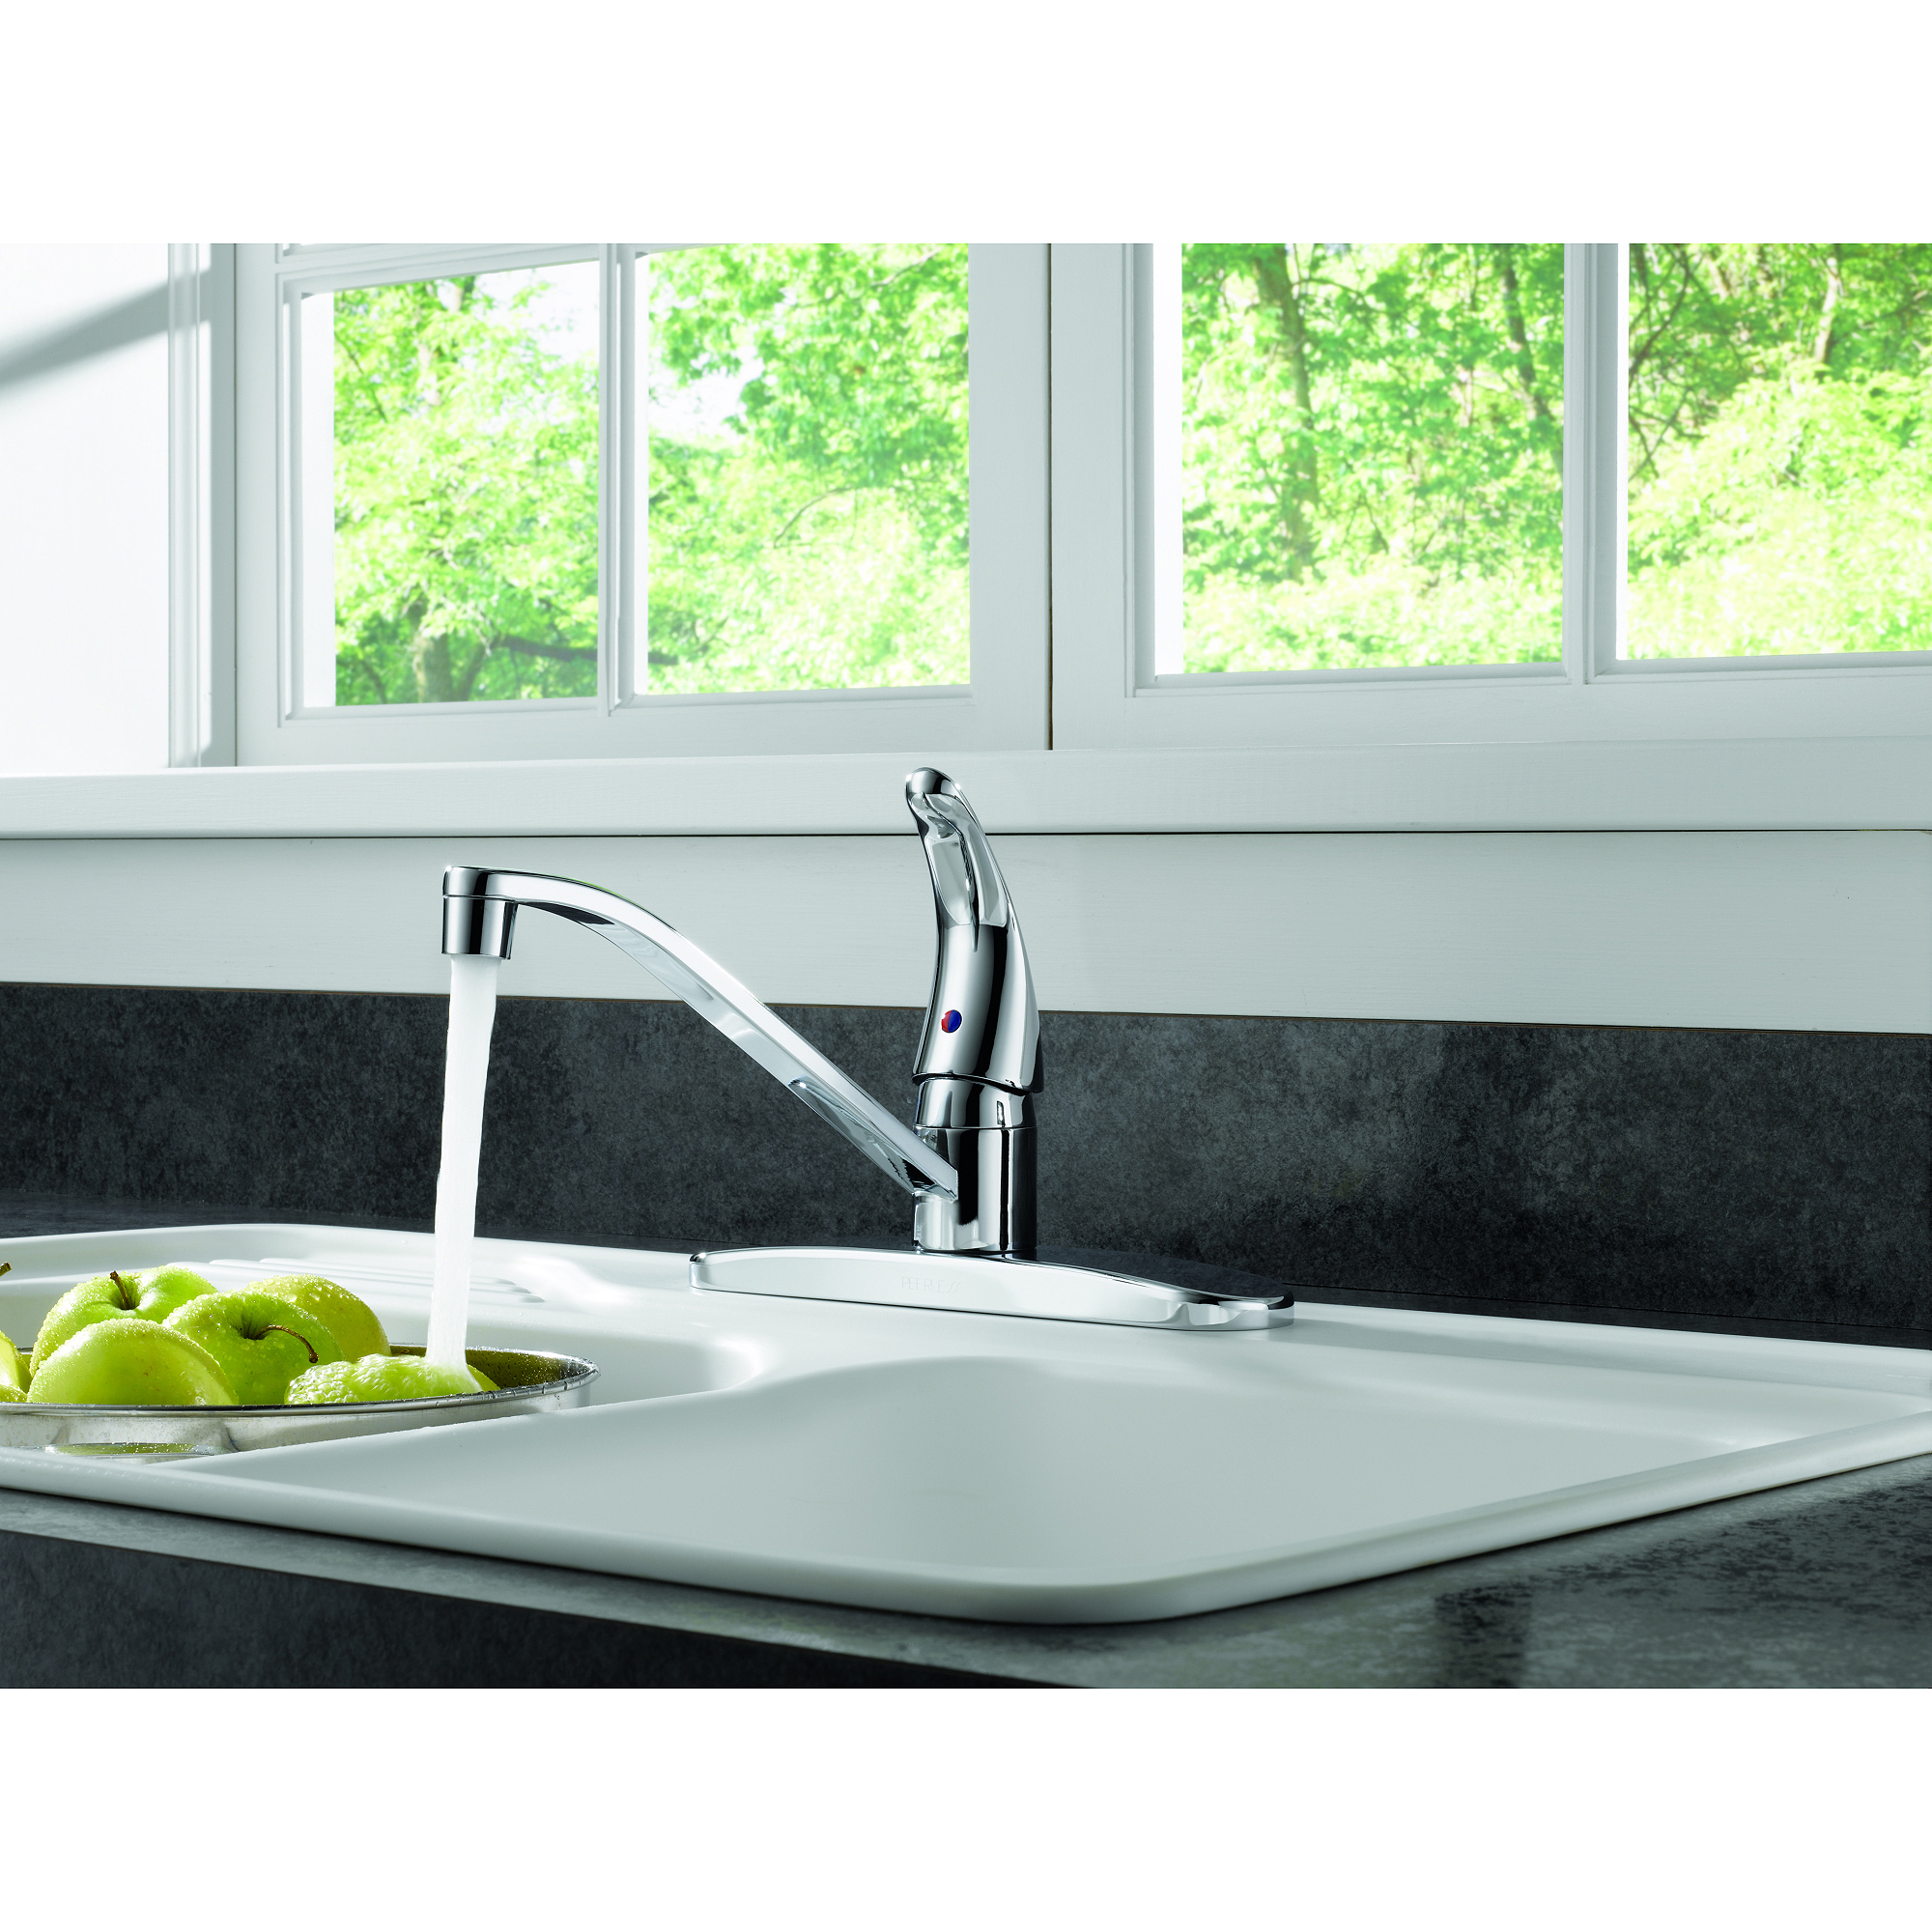 Peerless Single Handle Kitchen Faucet with Single Lever Control, Chrome